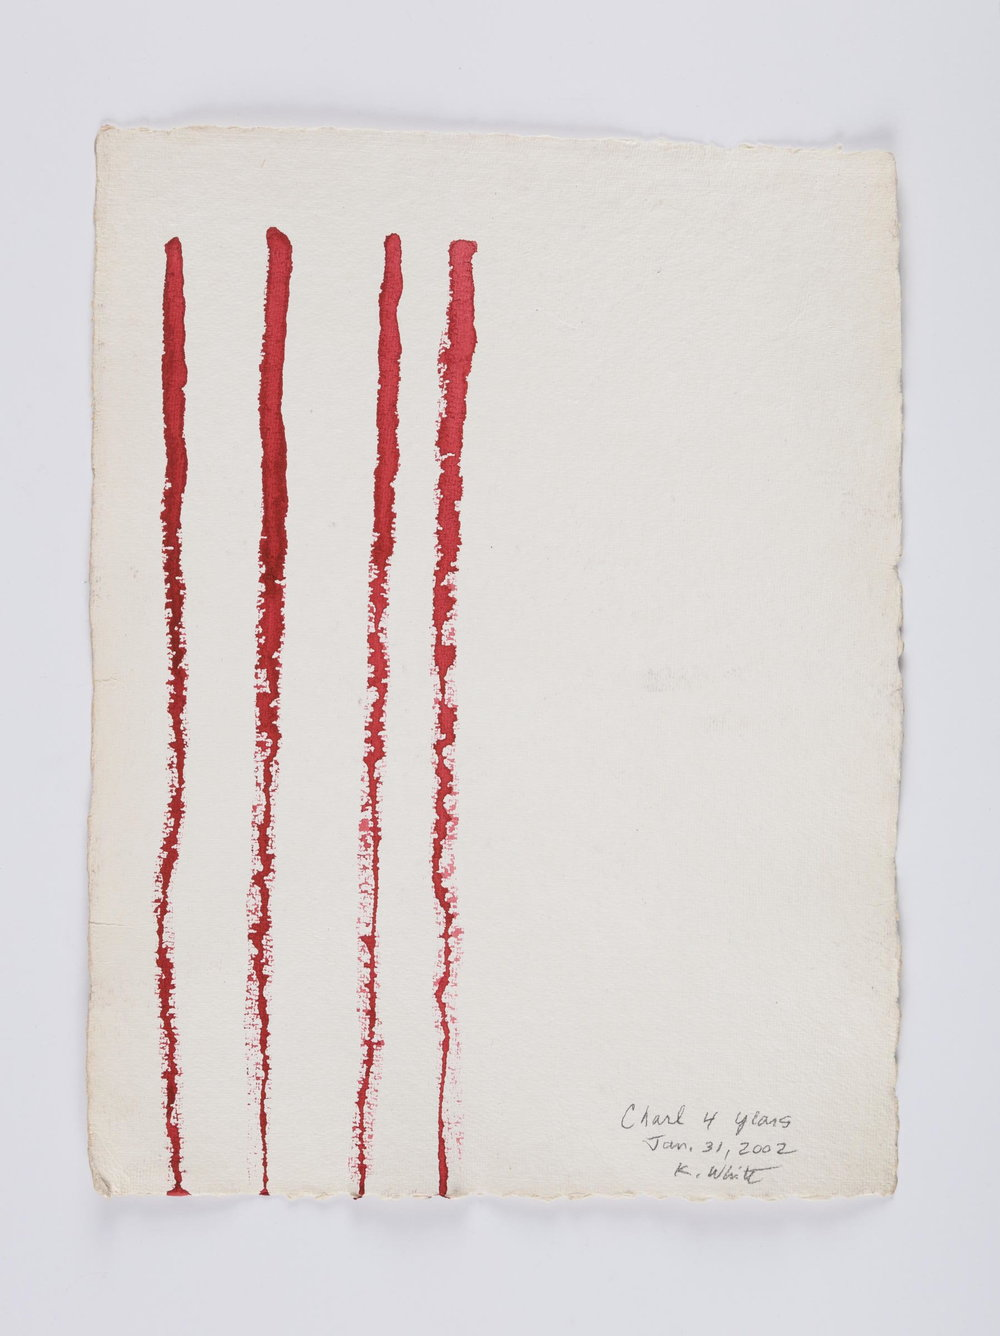 Kathleen White,    A Year of Firsts  (detail: 1 of 40 works on paper), 2001, 40 works on paper, each: 12 × 16 ½ in., each: 16 ½ × 12 in